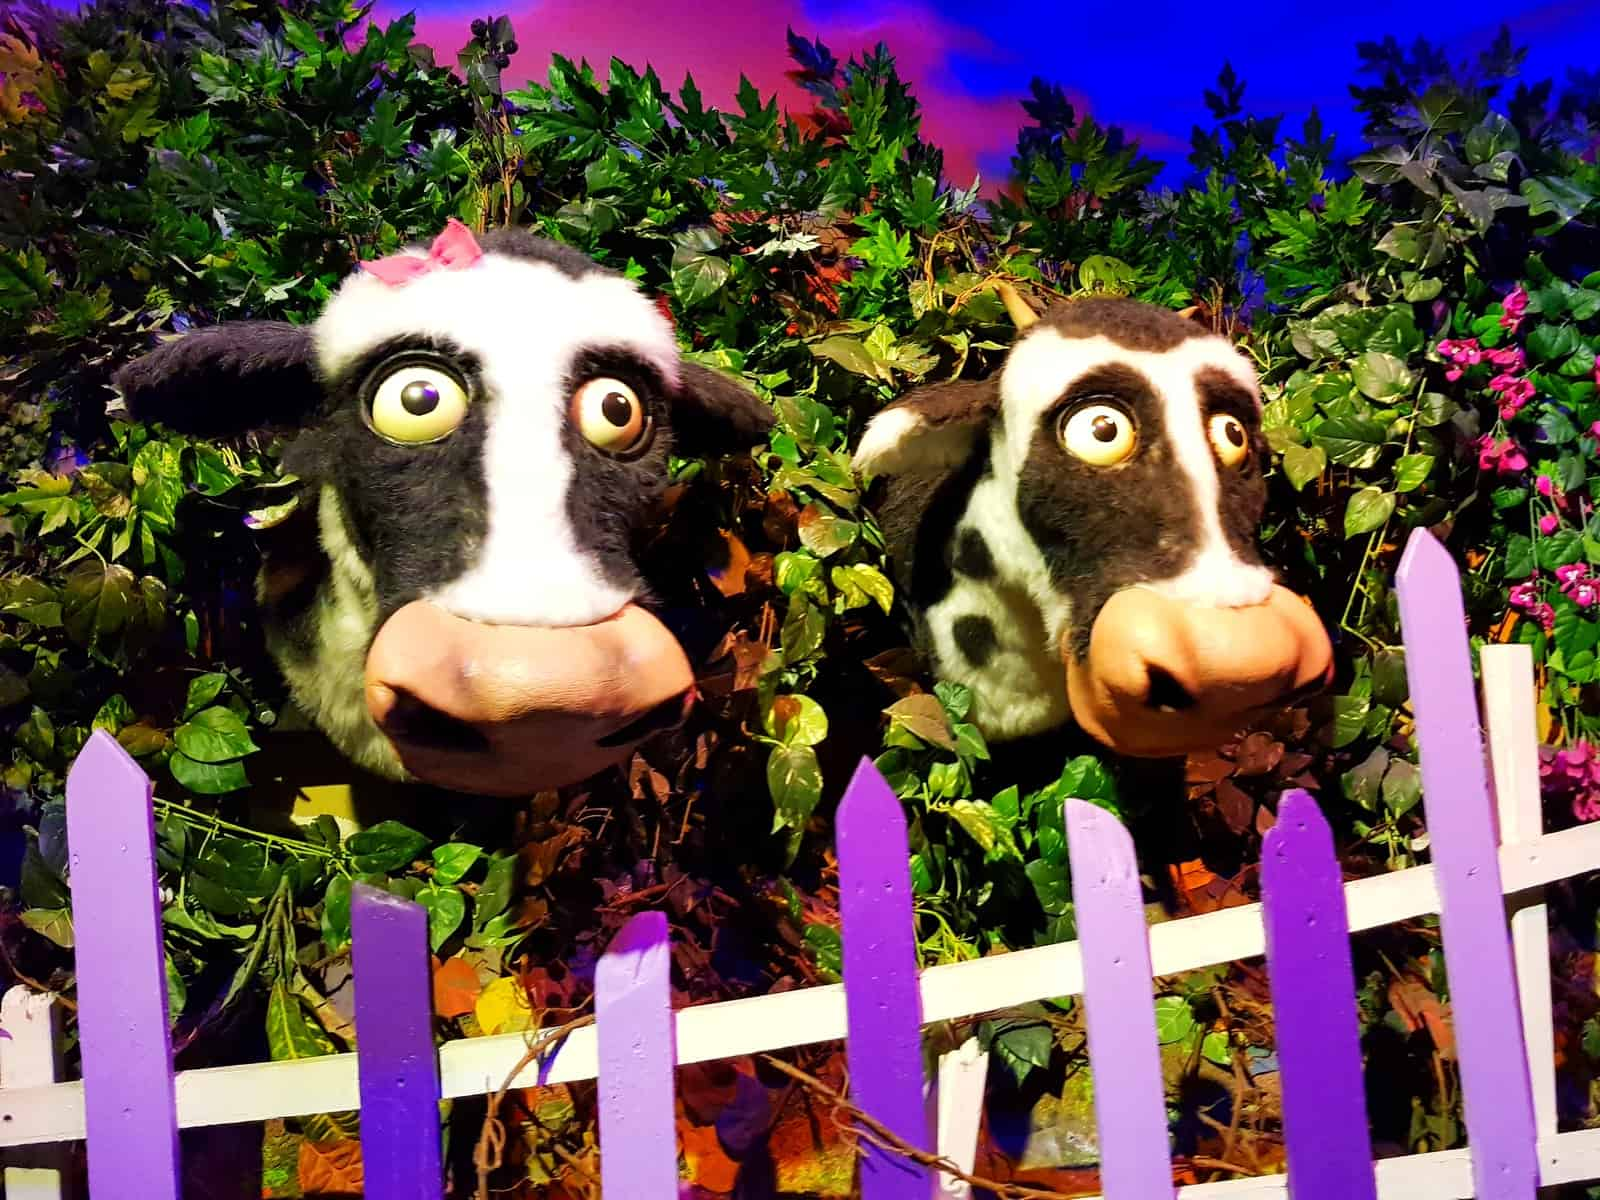 A family day out at Cadbury World Birmingham two cows in Cadavra ride